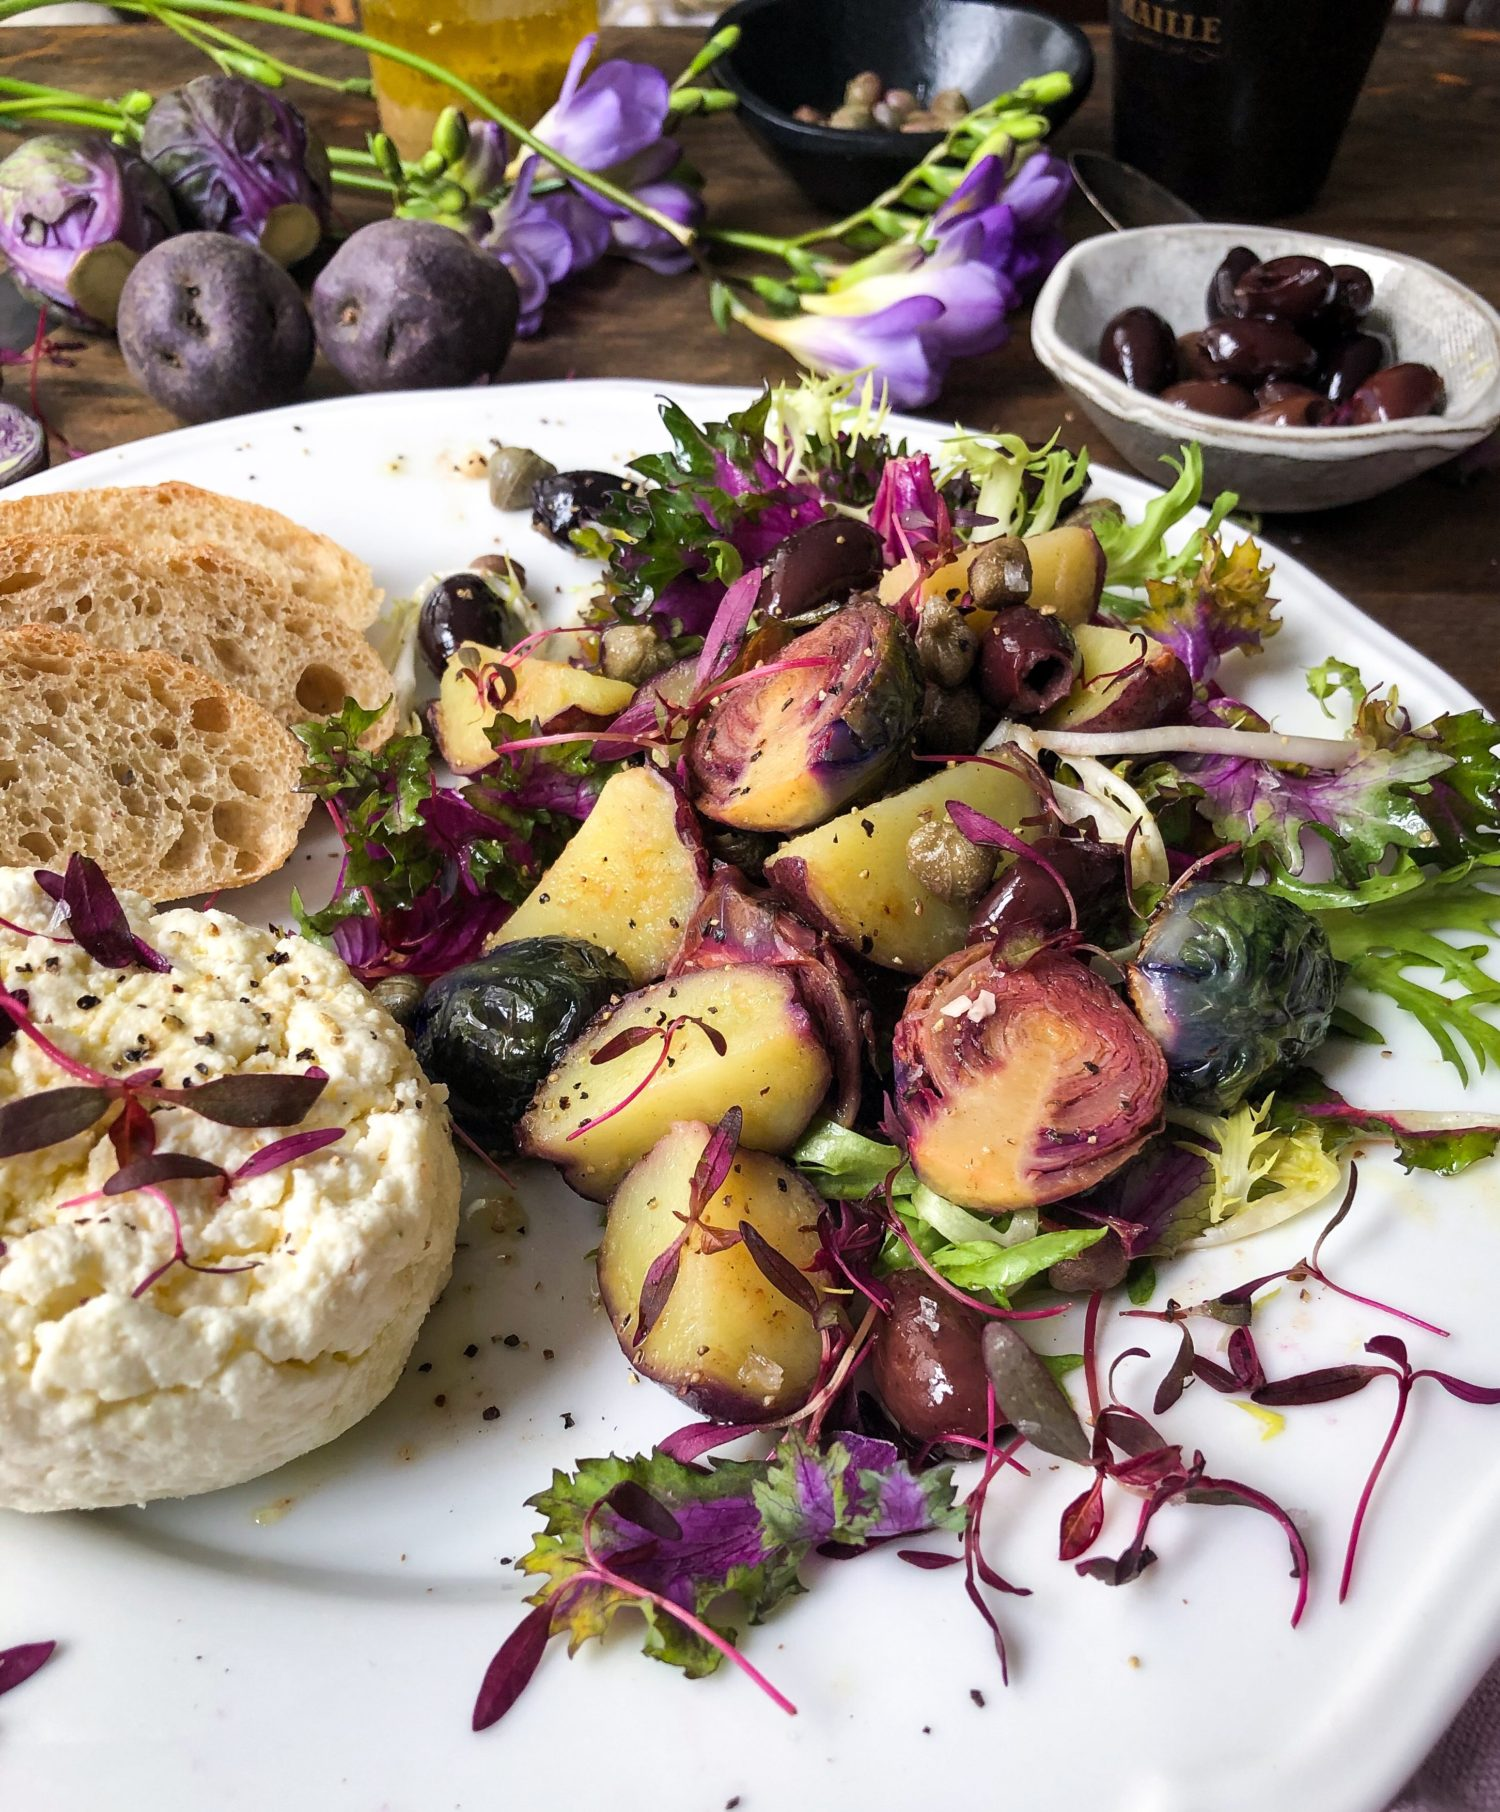 Homemade Ricotta and grilled Salad